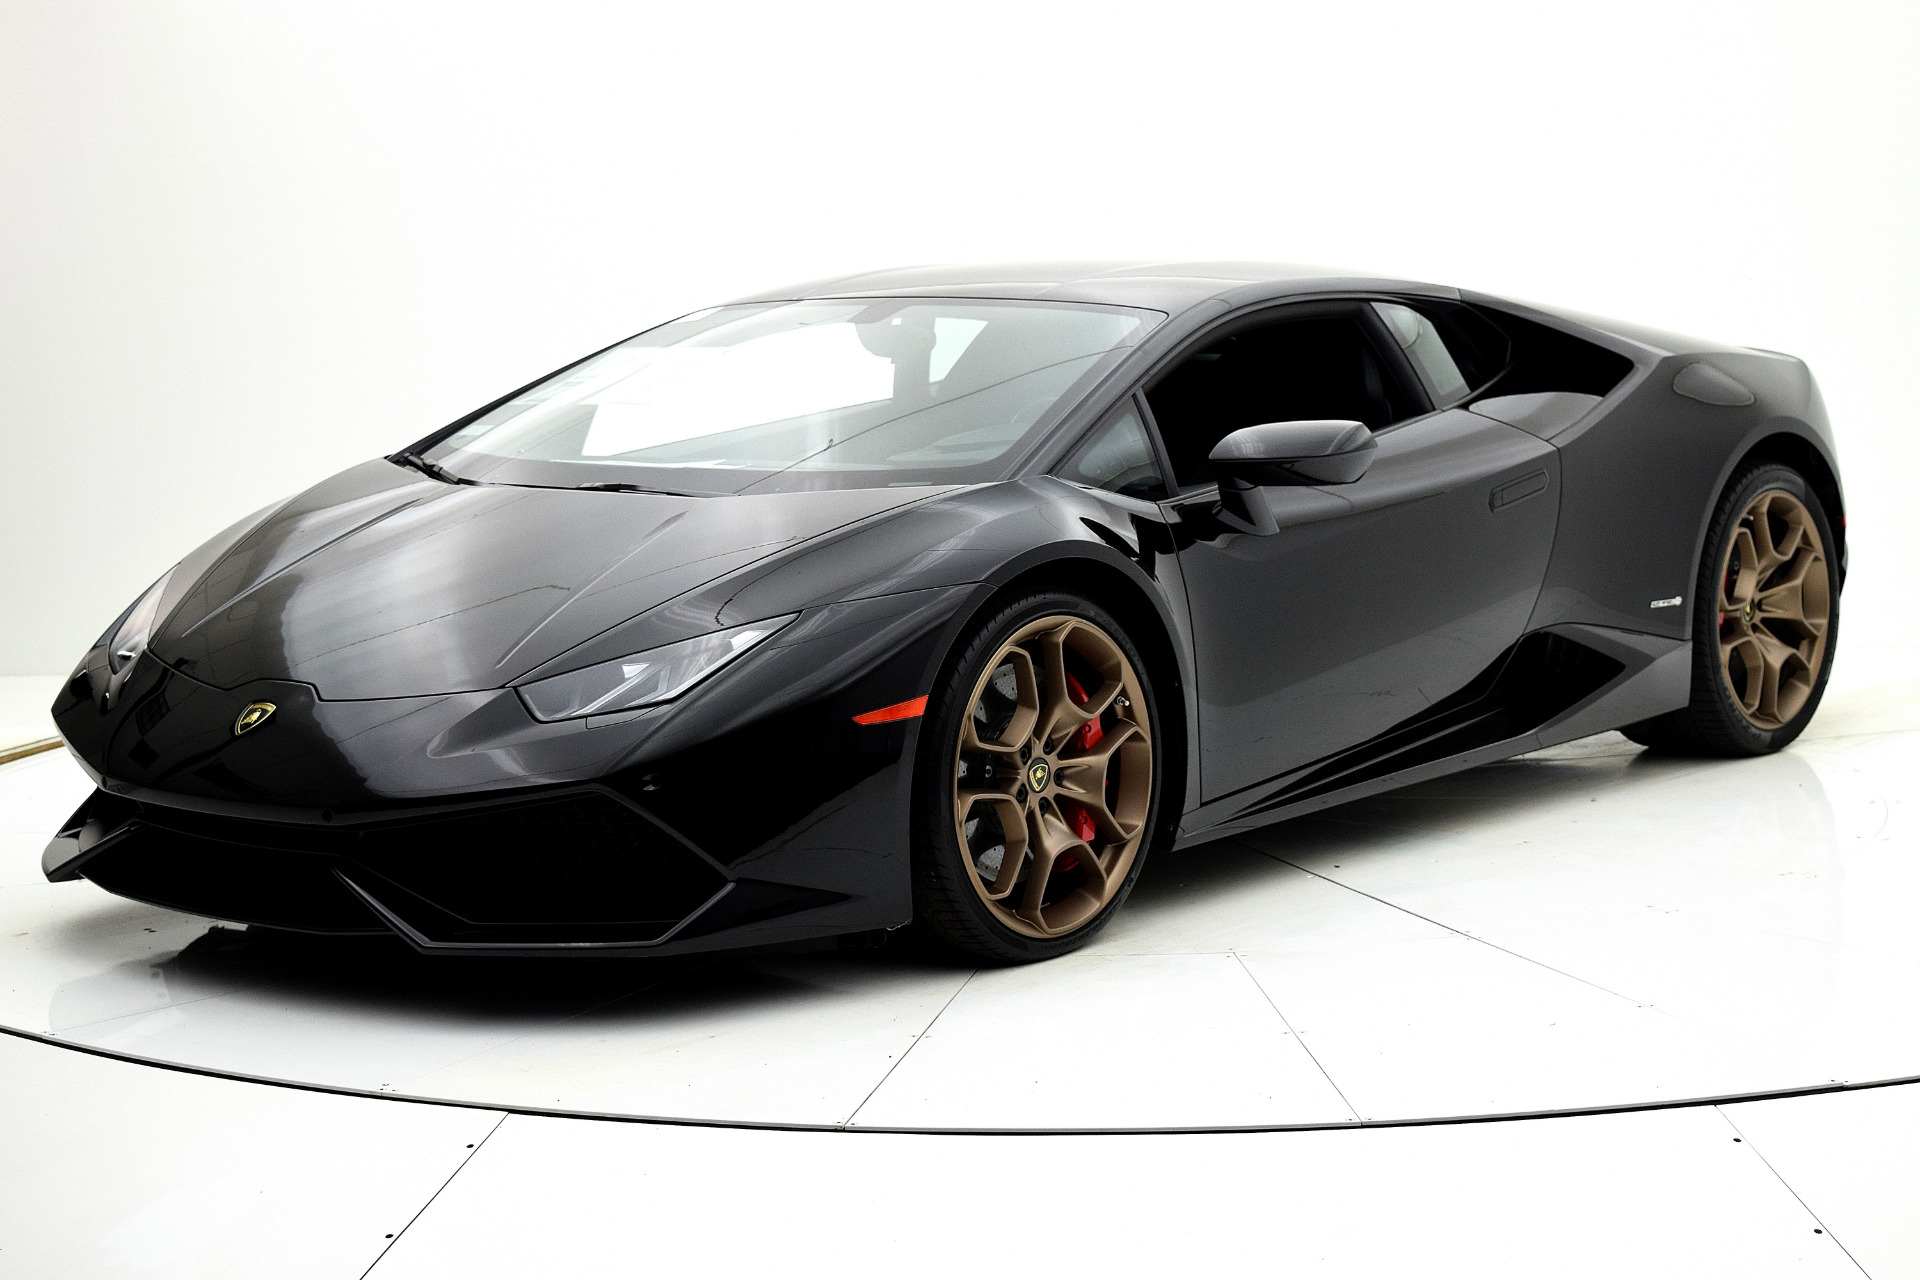 Lamborghini Huracan 2015 Nero For Sale $199880 Stock Number 18M185AJI